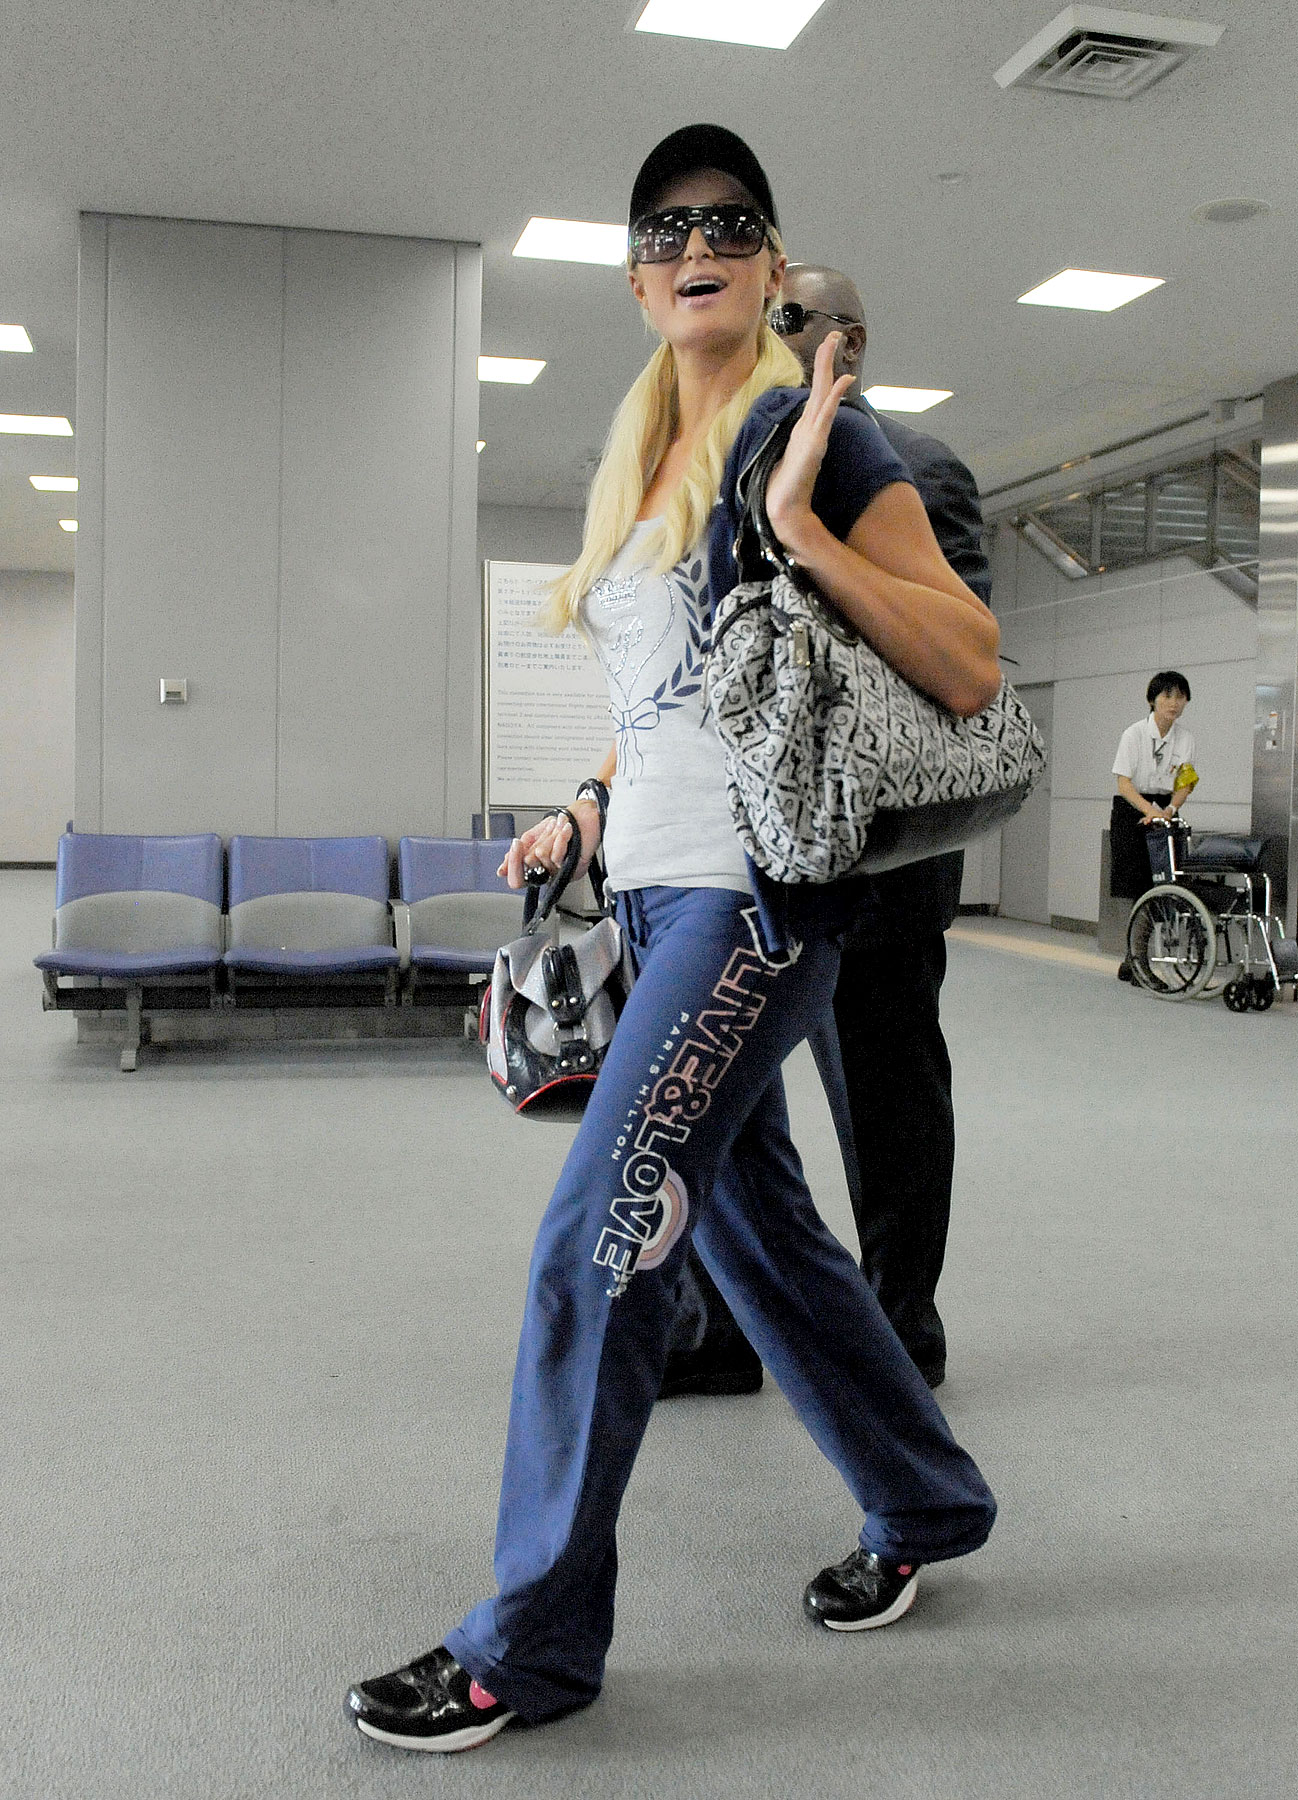 Paris Hilton Booted From Japan (PHOTOS)